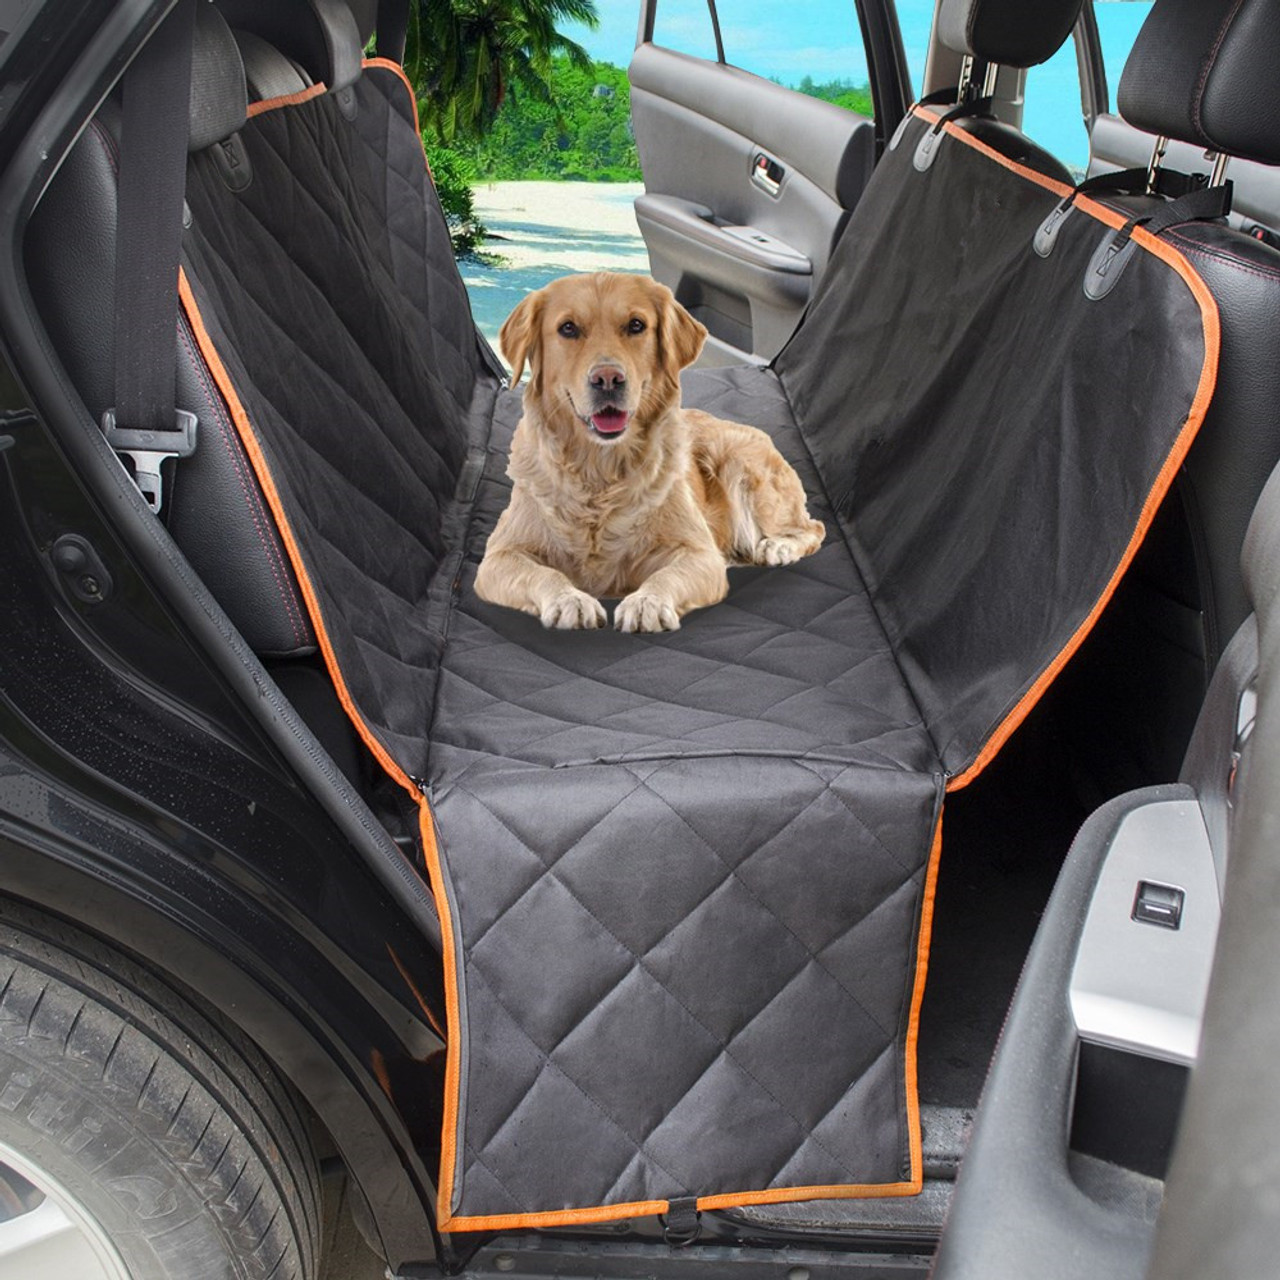 Seat Belts & Padding Automobiles & Motorcycles Car Waterproof Back Seat Covers Dog Mat Blanket Hammock Protector Anti Resistance Bite Car-covers Cloth Universal Free Ship Soft And Antislippery